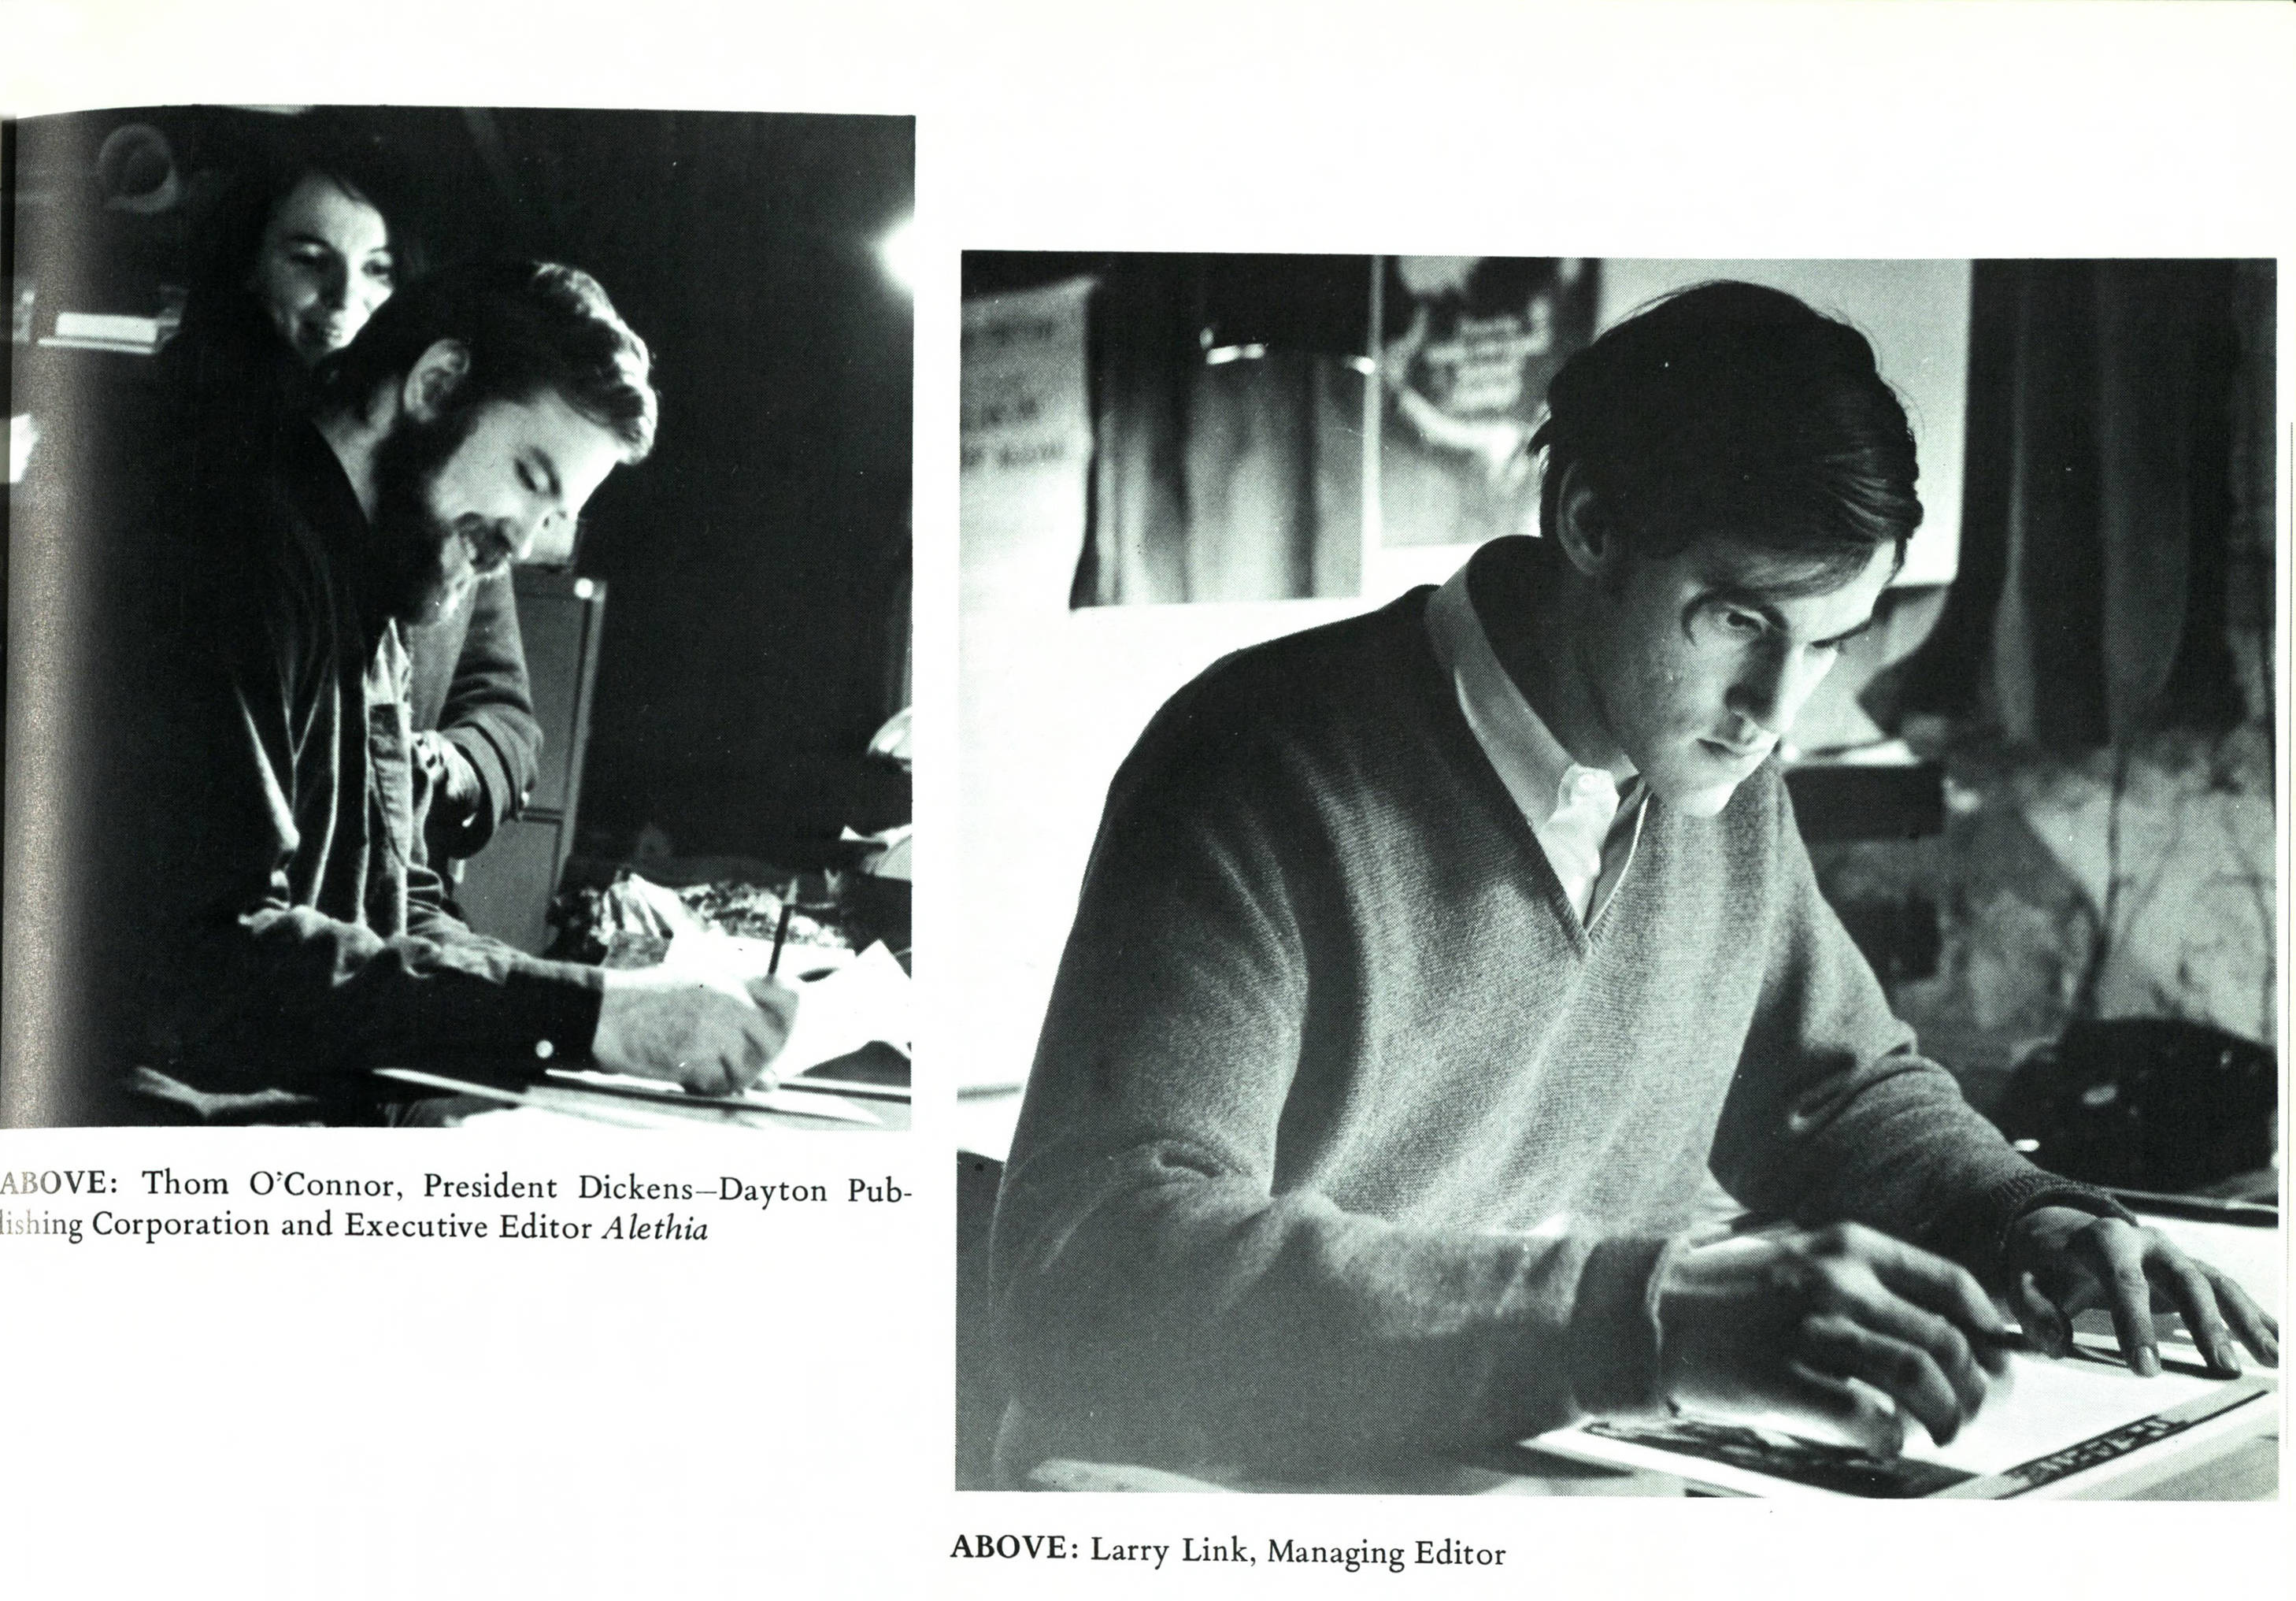 Thom O'Connor and Joseph Link work on an upcoming issue of the Aletheia (courtesy of the DePaul Richardson Library Digital Collections)